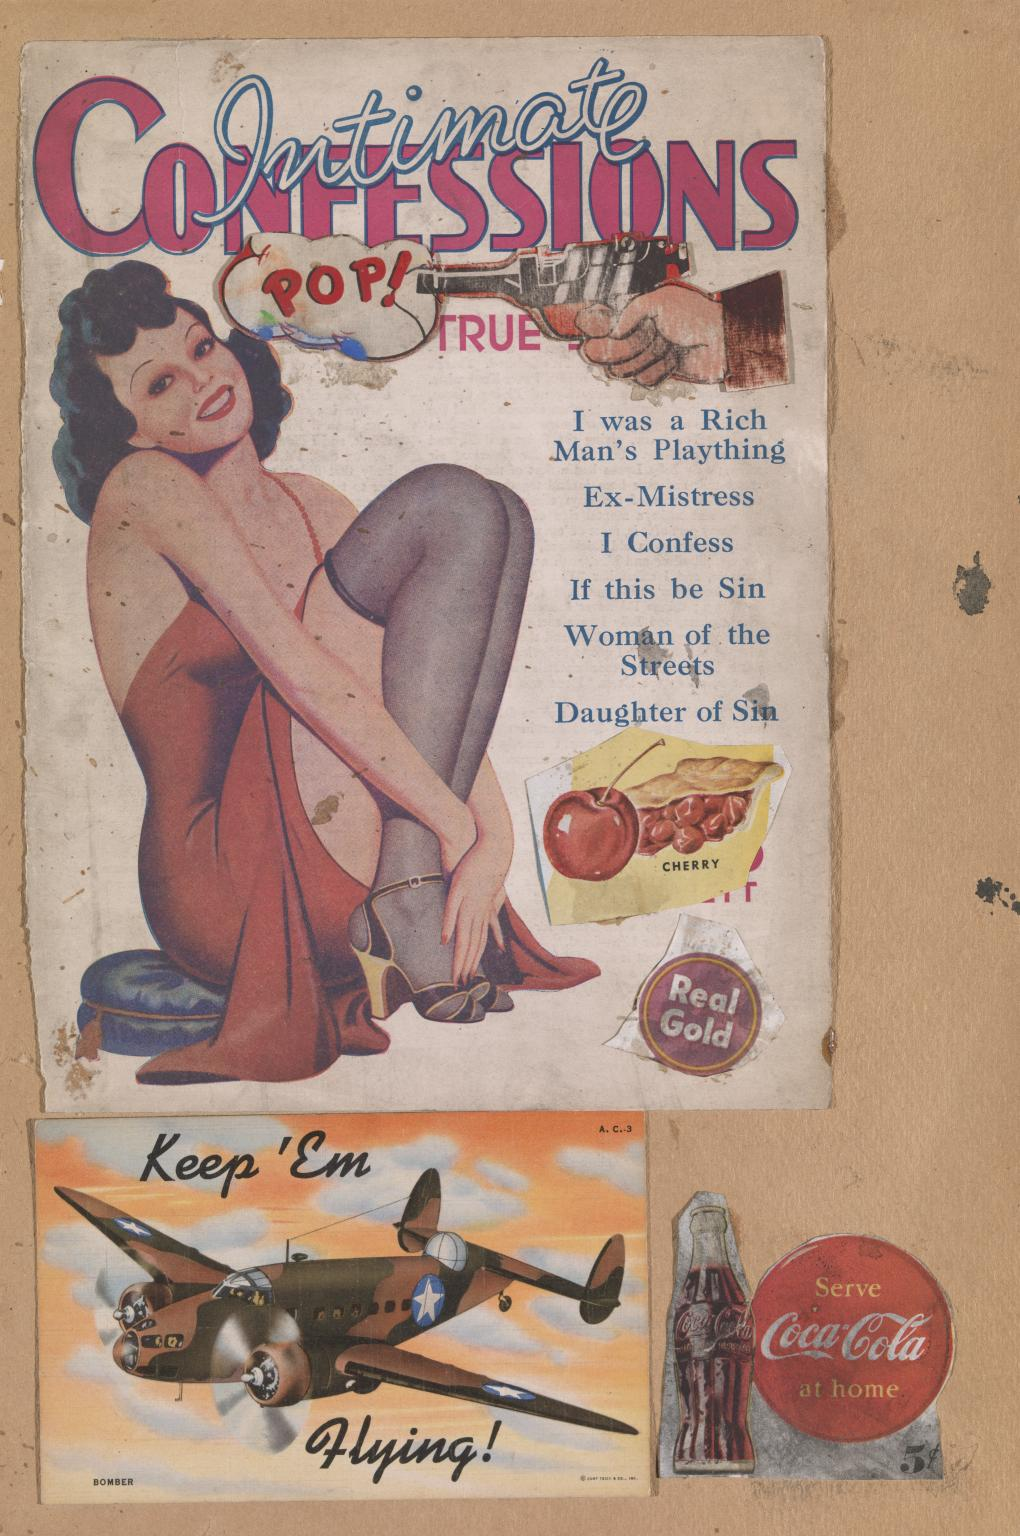 Paolozzi's I was a Rich Man's Plaything (1947) | Source: tate.org.uk